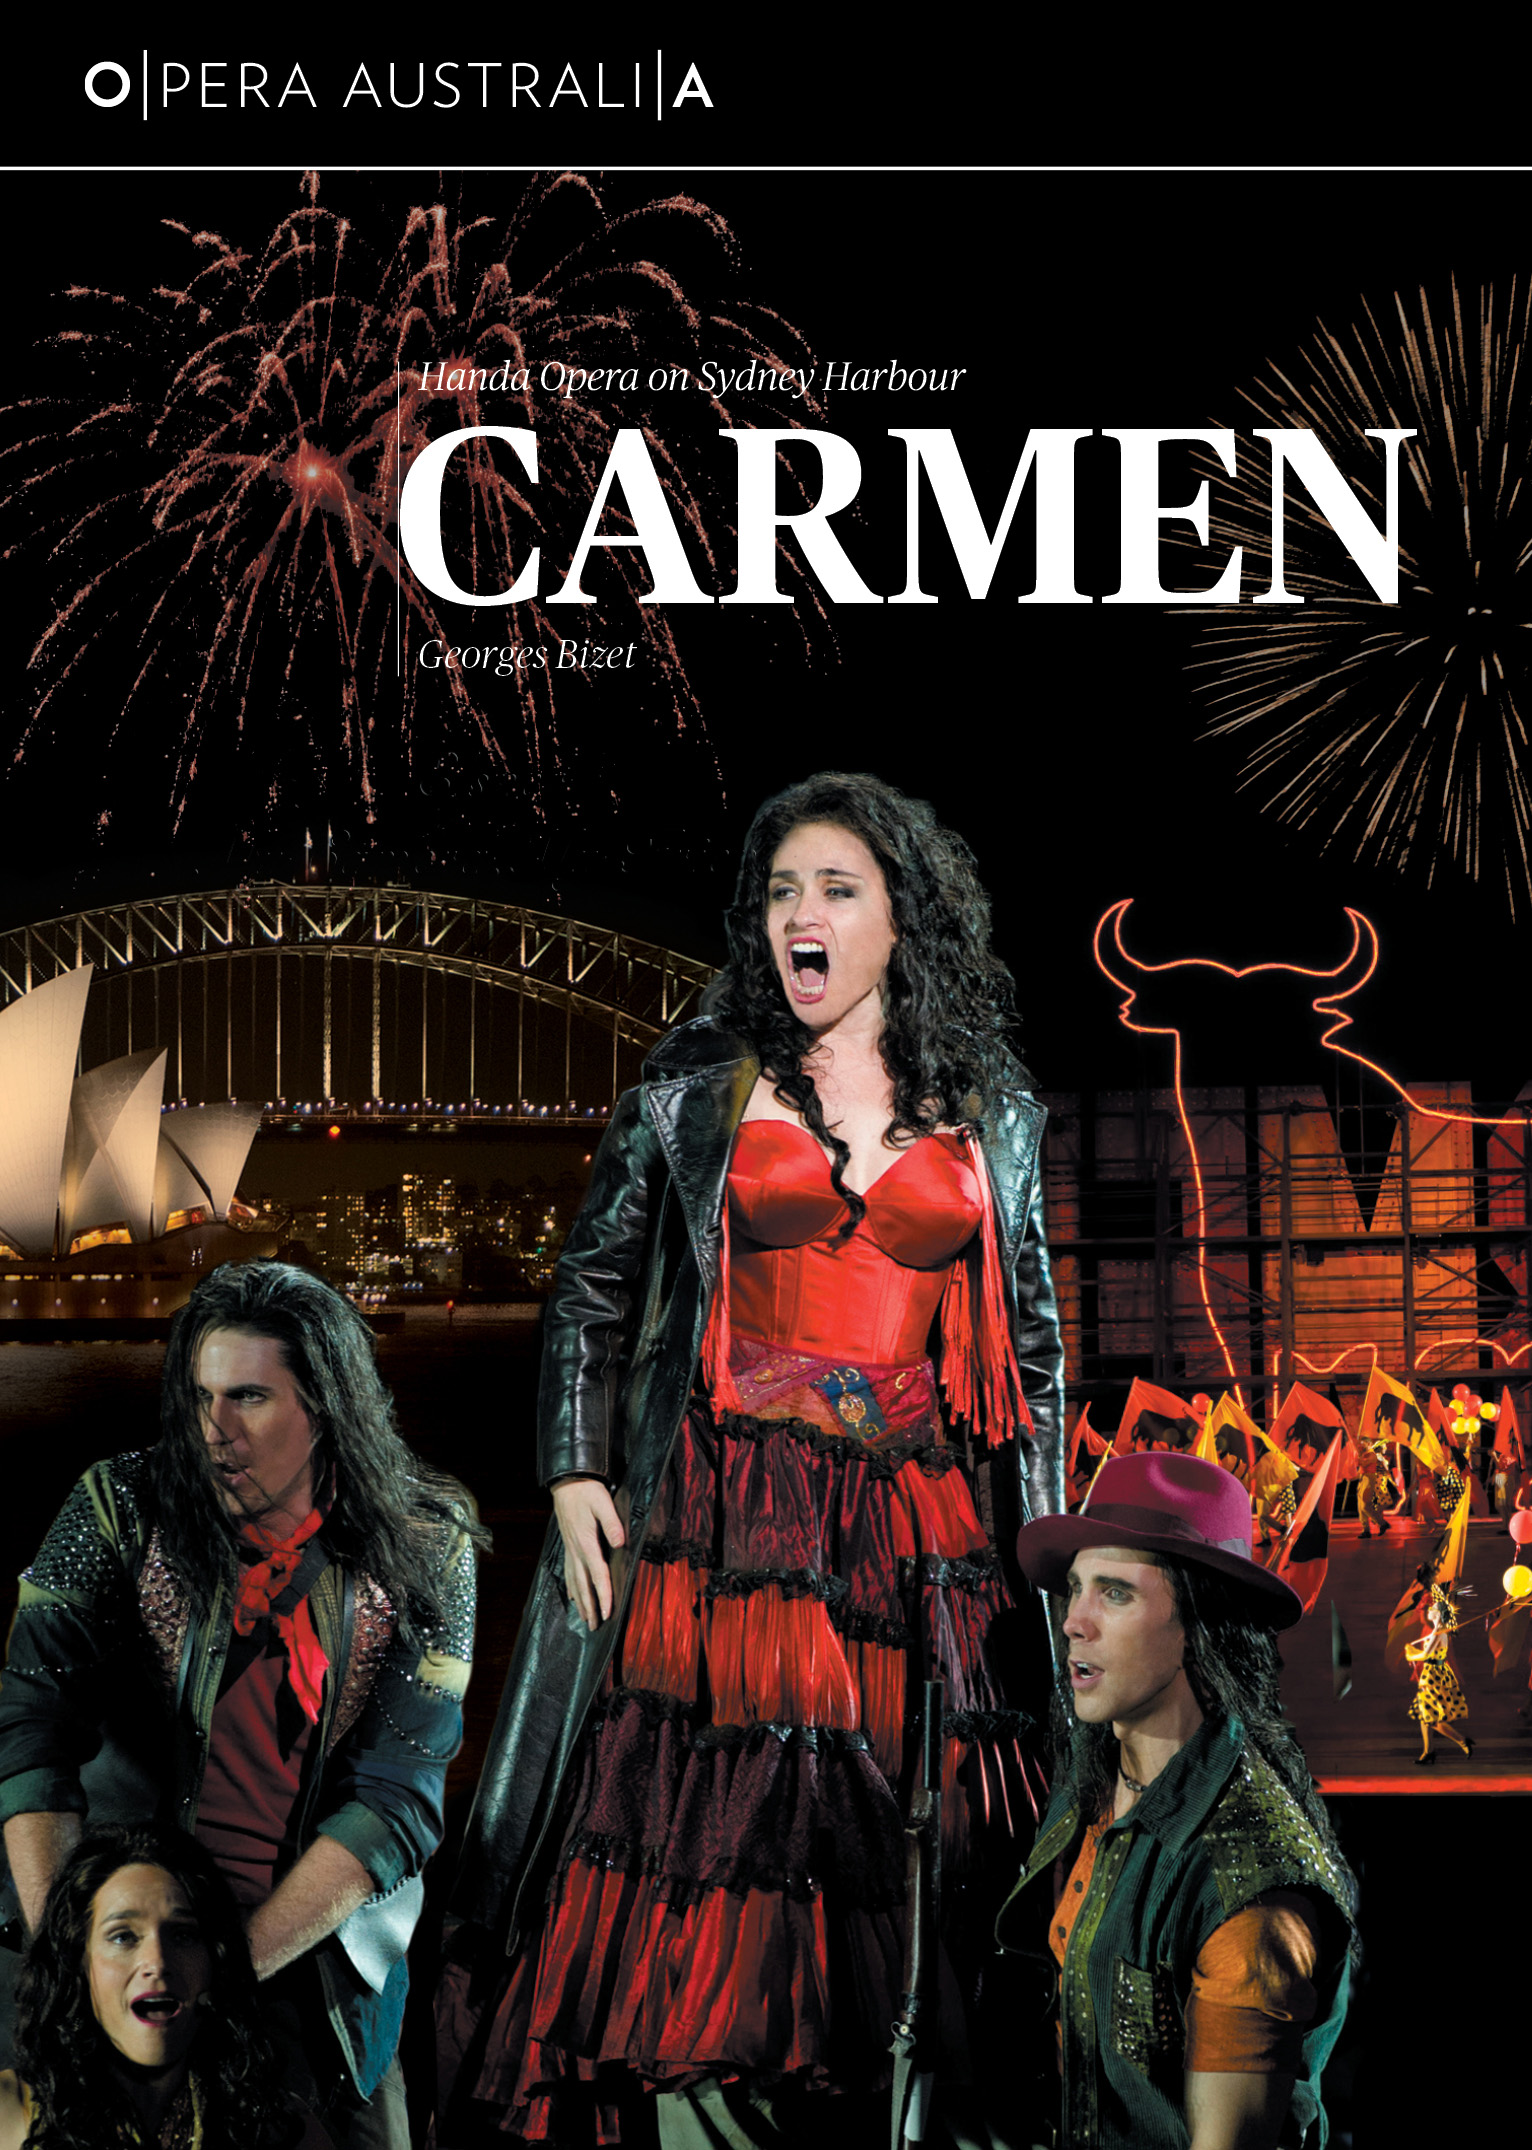 opera carmen Carmen: carmen, opera in four acts by french composer georges bizet—with a libretto in french by henri meilhac and ludovic halévy—that premiered on march 3, 1875.